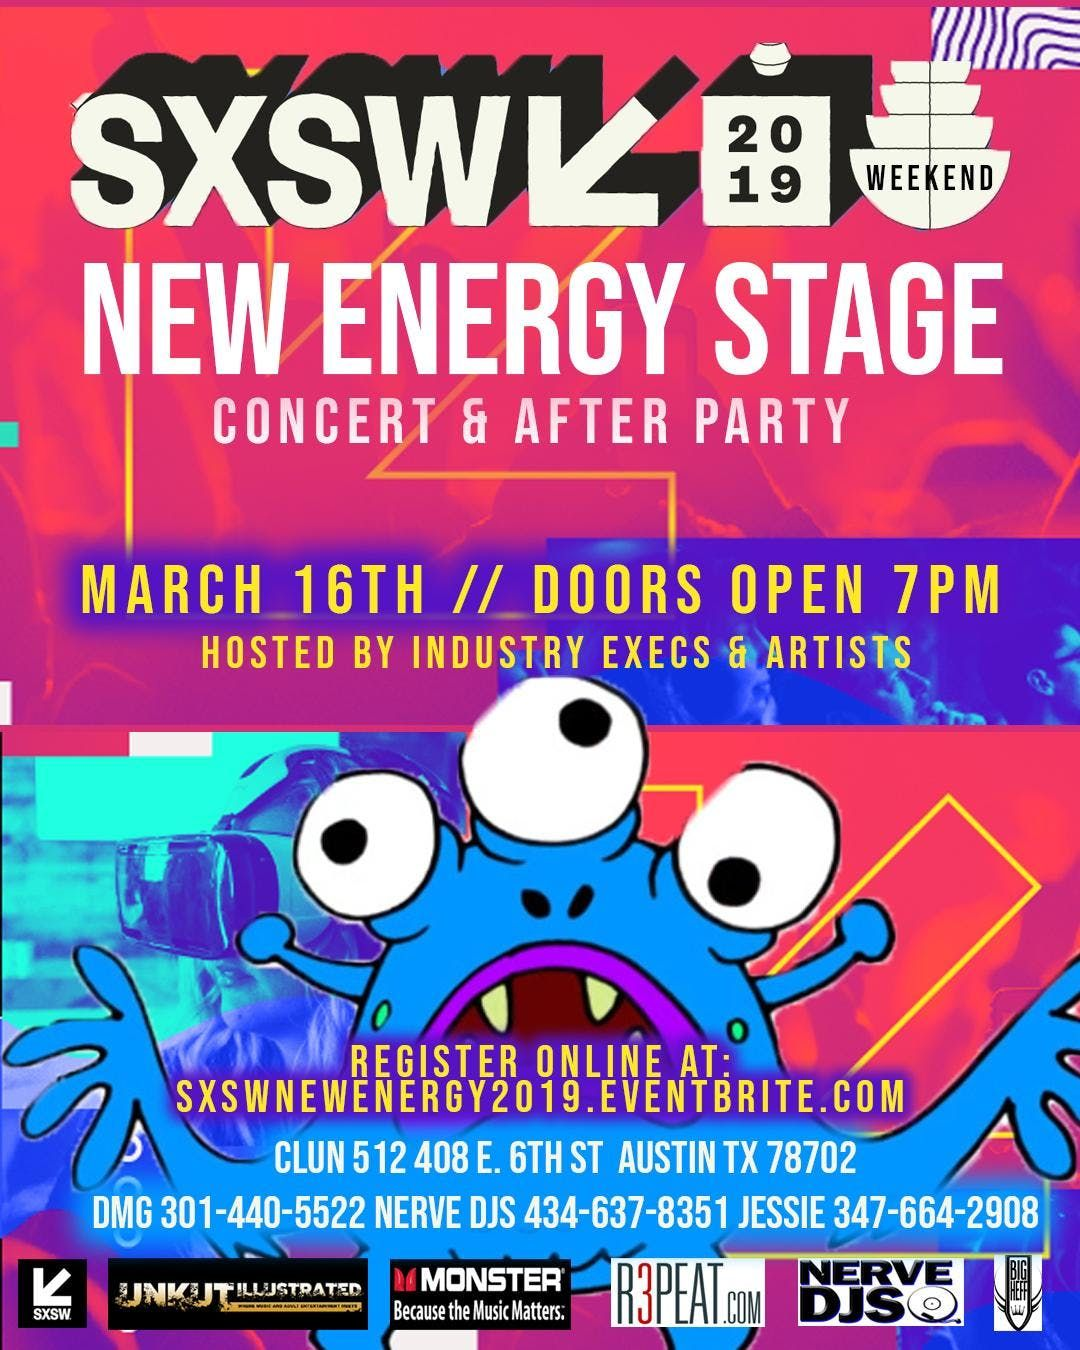 2019 SXSW NERVE DJS NEW ENERGY STAGE